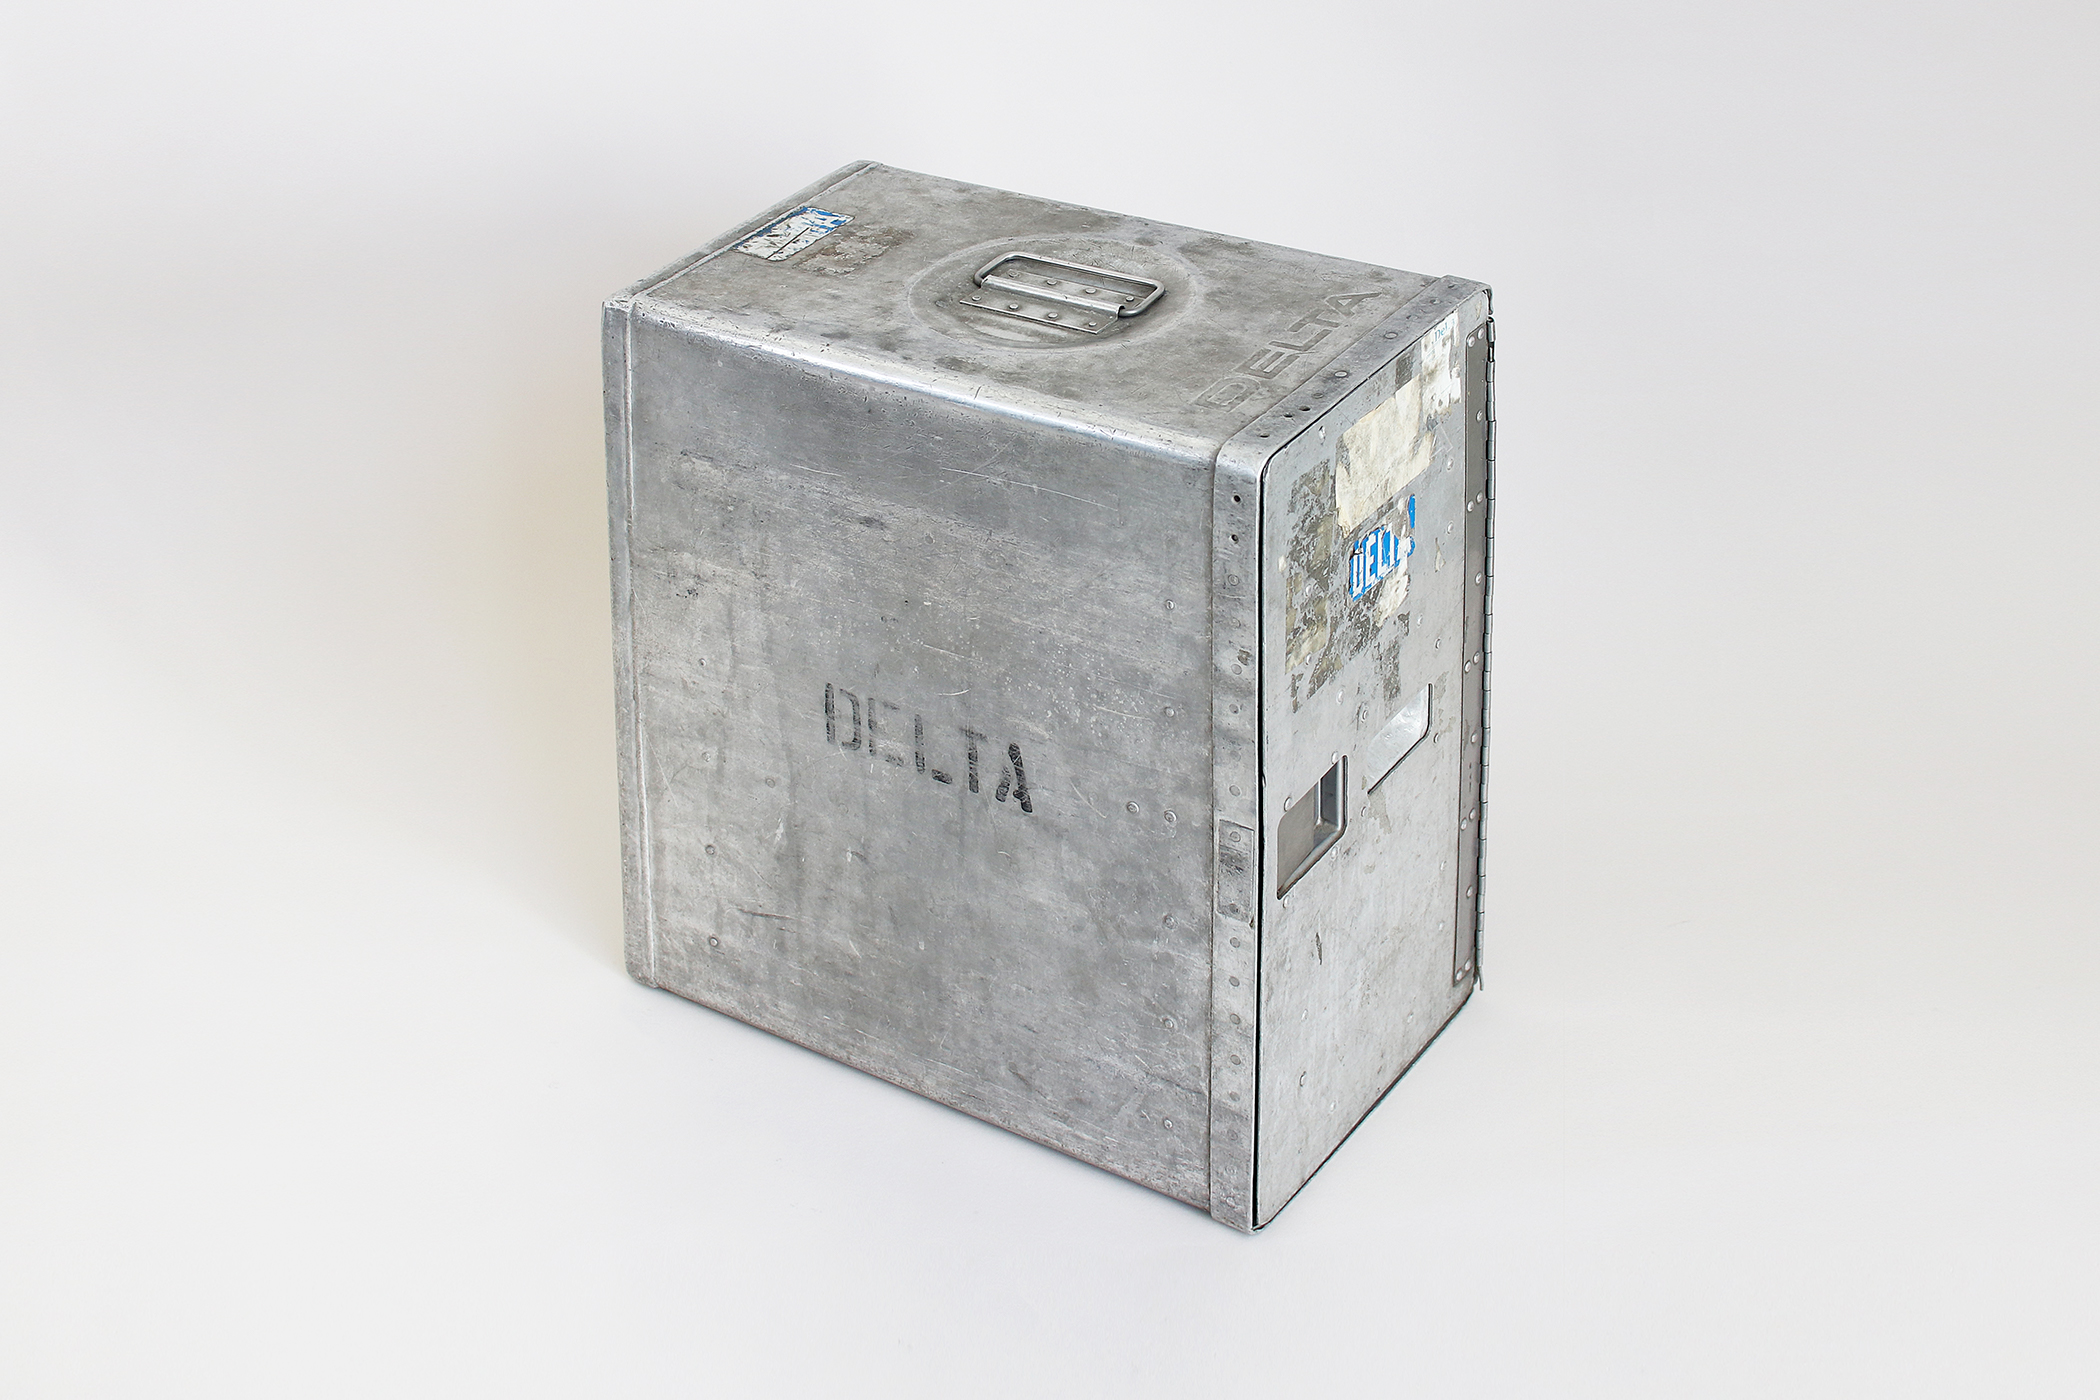 DELTA AIRLINE GALLEY  ALUMINUMCONTAINER